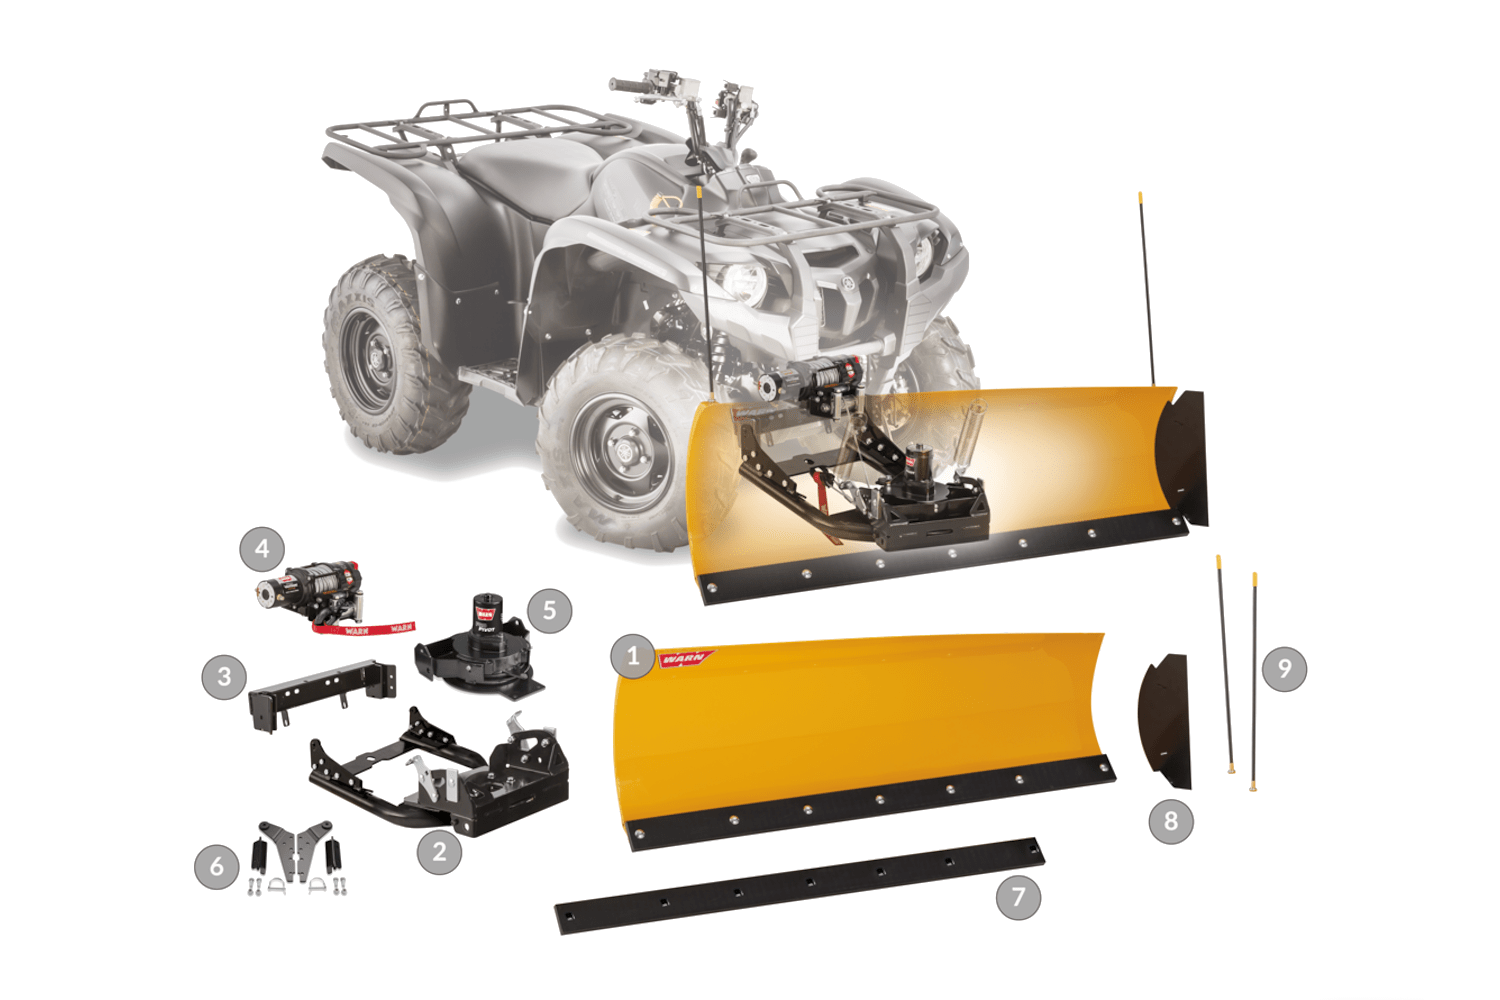 warn powerspors plow systems